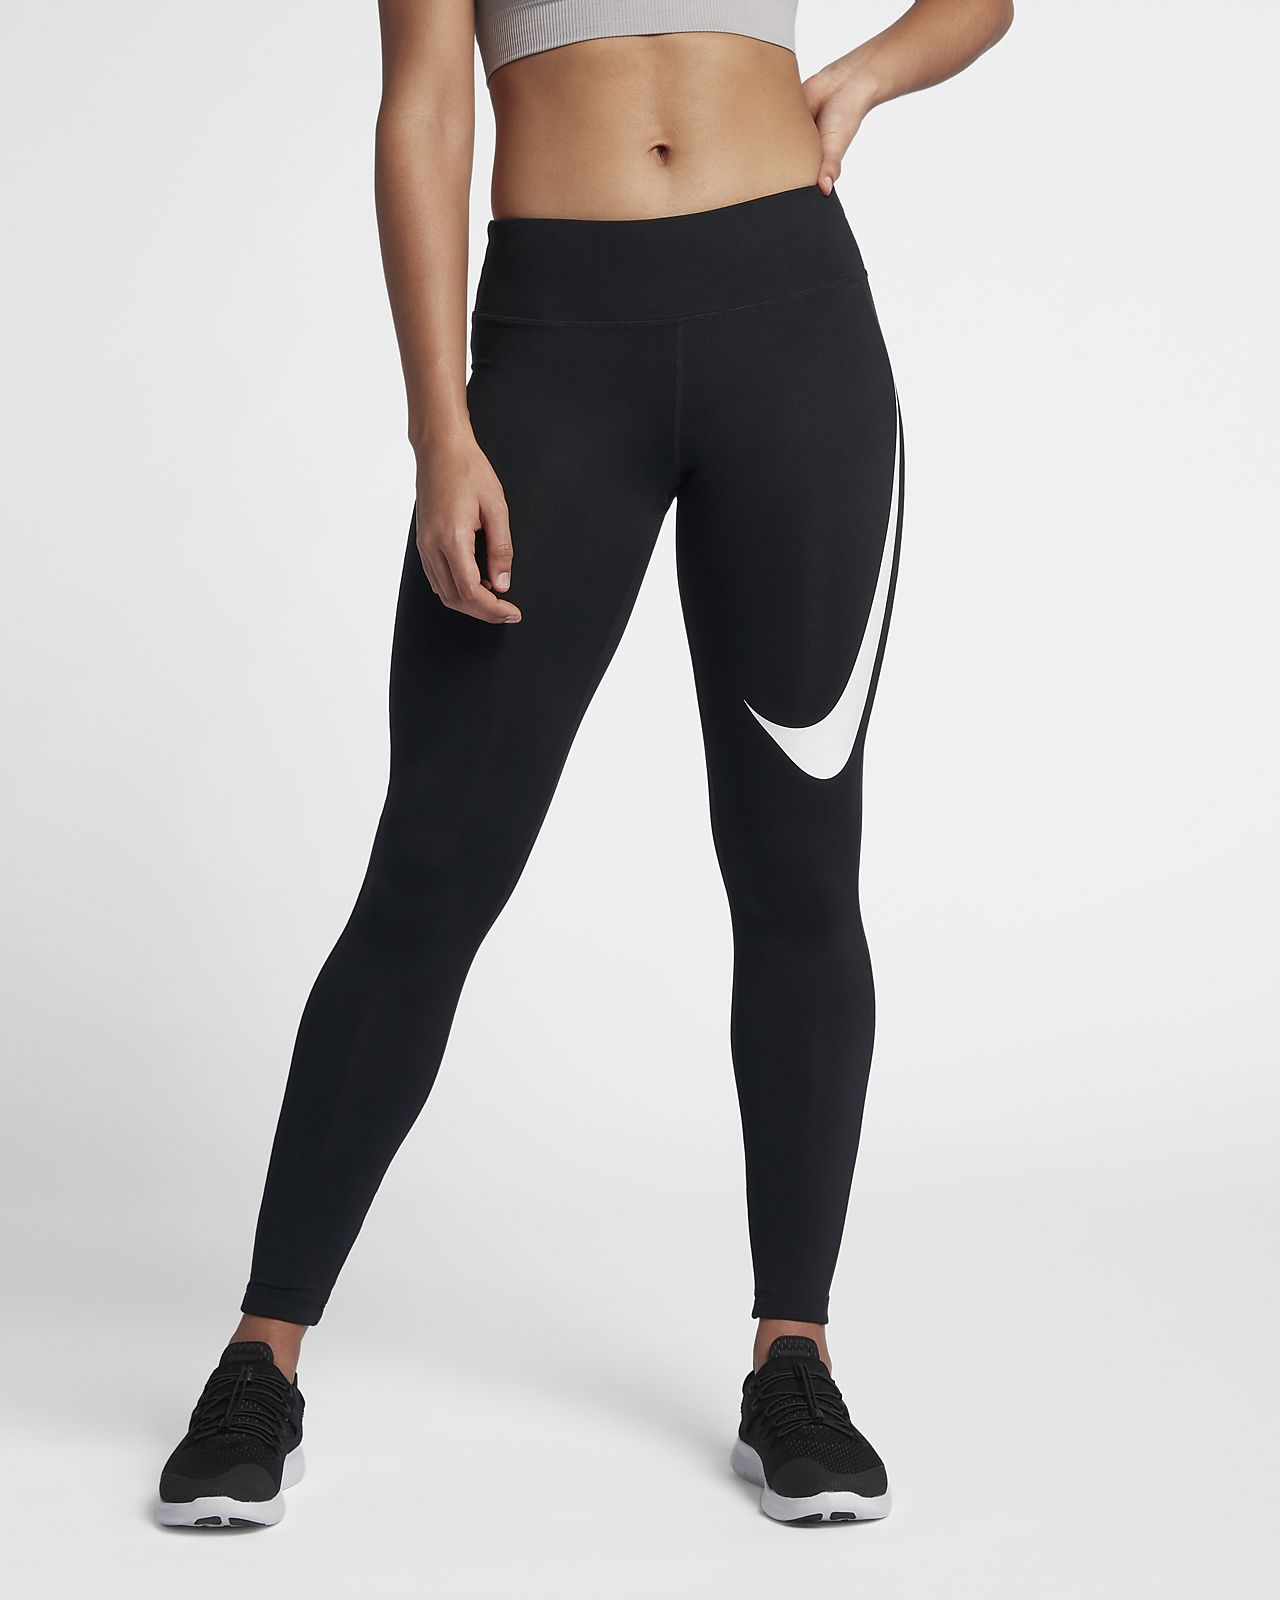 ... Nike Power Essential Women's Running Tights